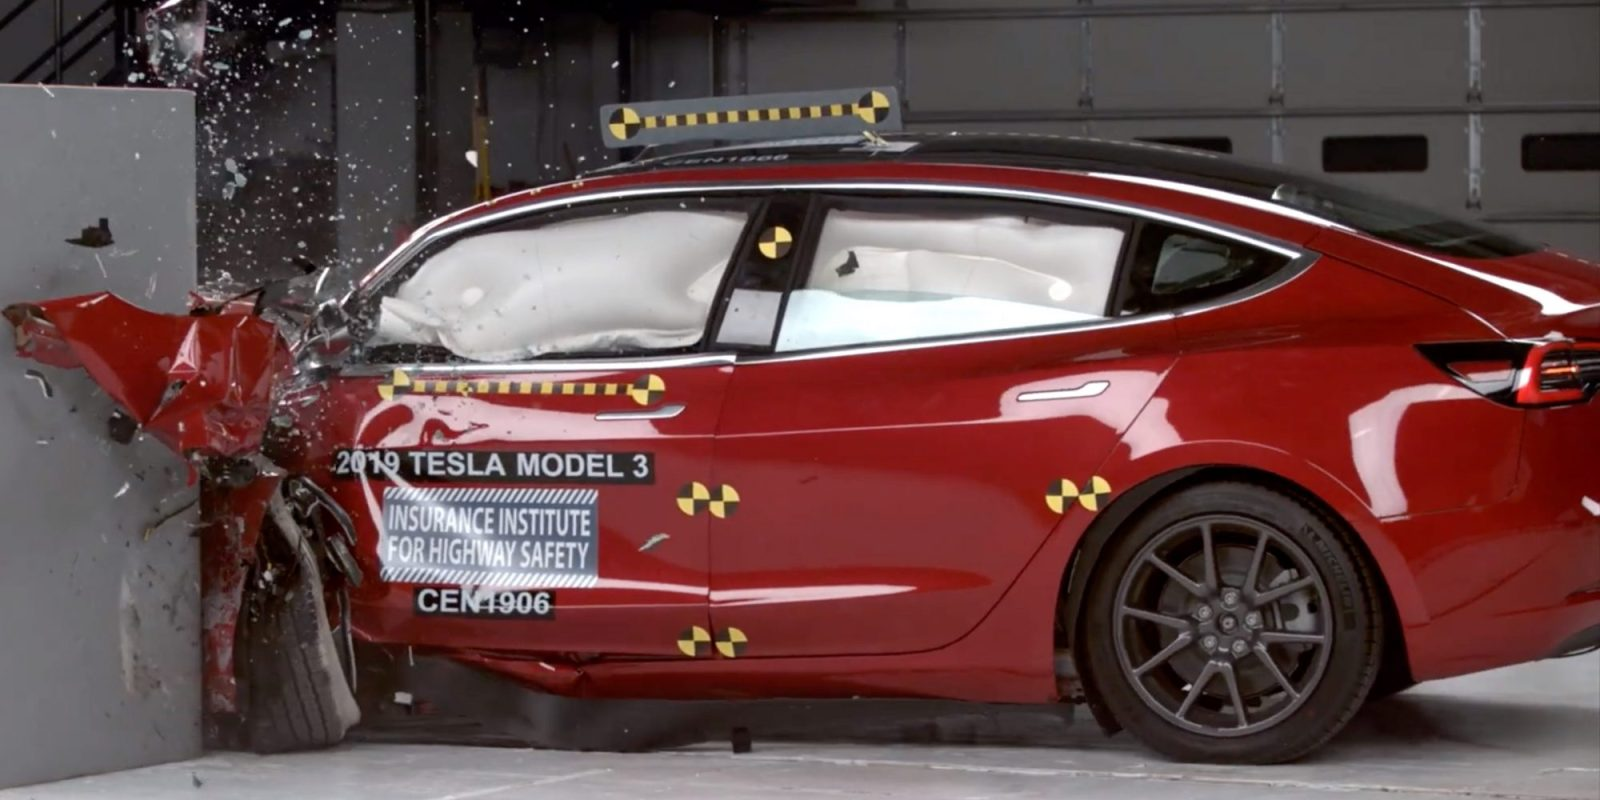 Tesla Model 3 earns IIHS Top Safety Pick+, highest possible safety award